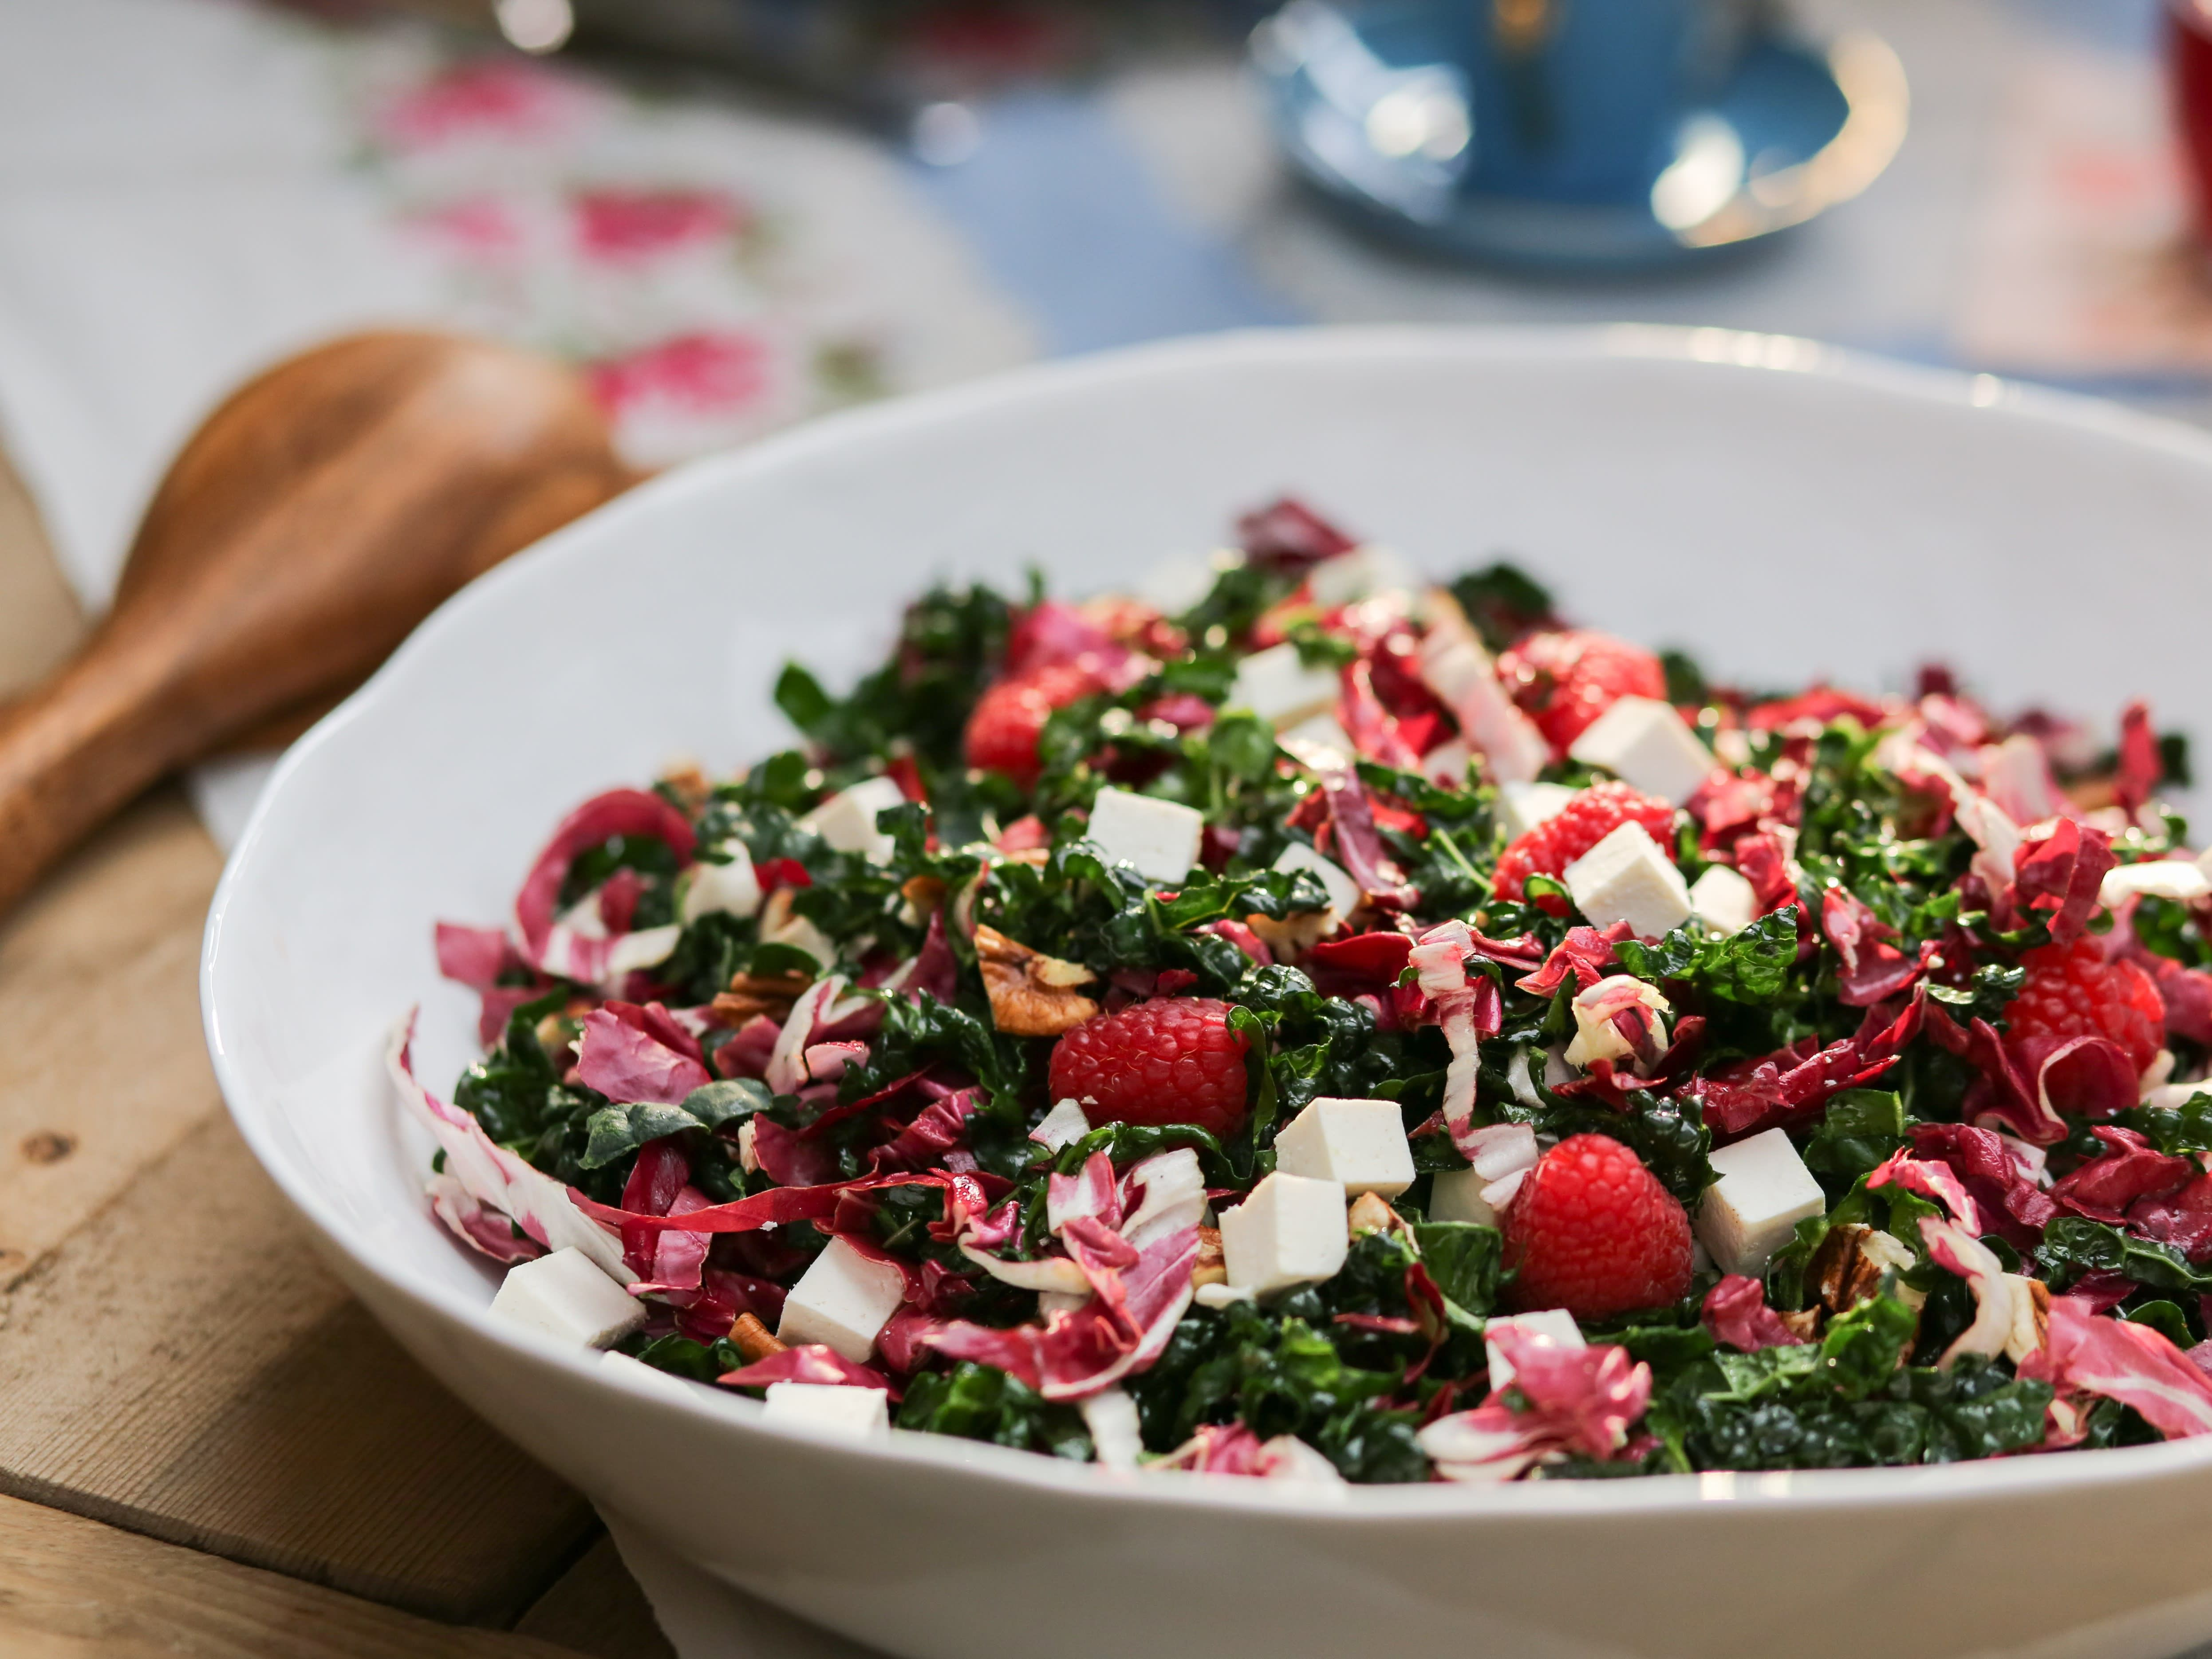 Kale And Radicchio Salad With Raspberry Vinaigrette Recipe Food Network Recipes Raspberry Vinaigrette Recipe Raspberry Salad